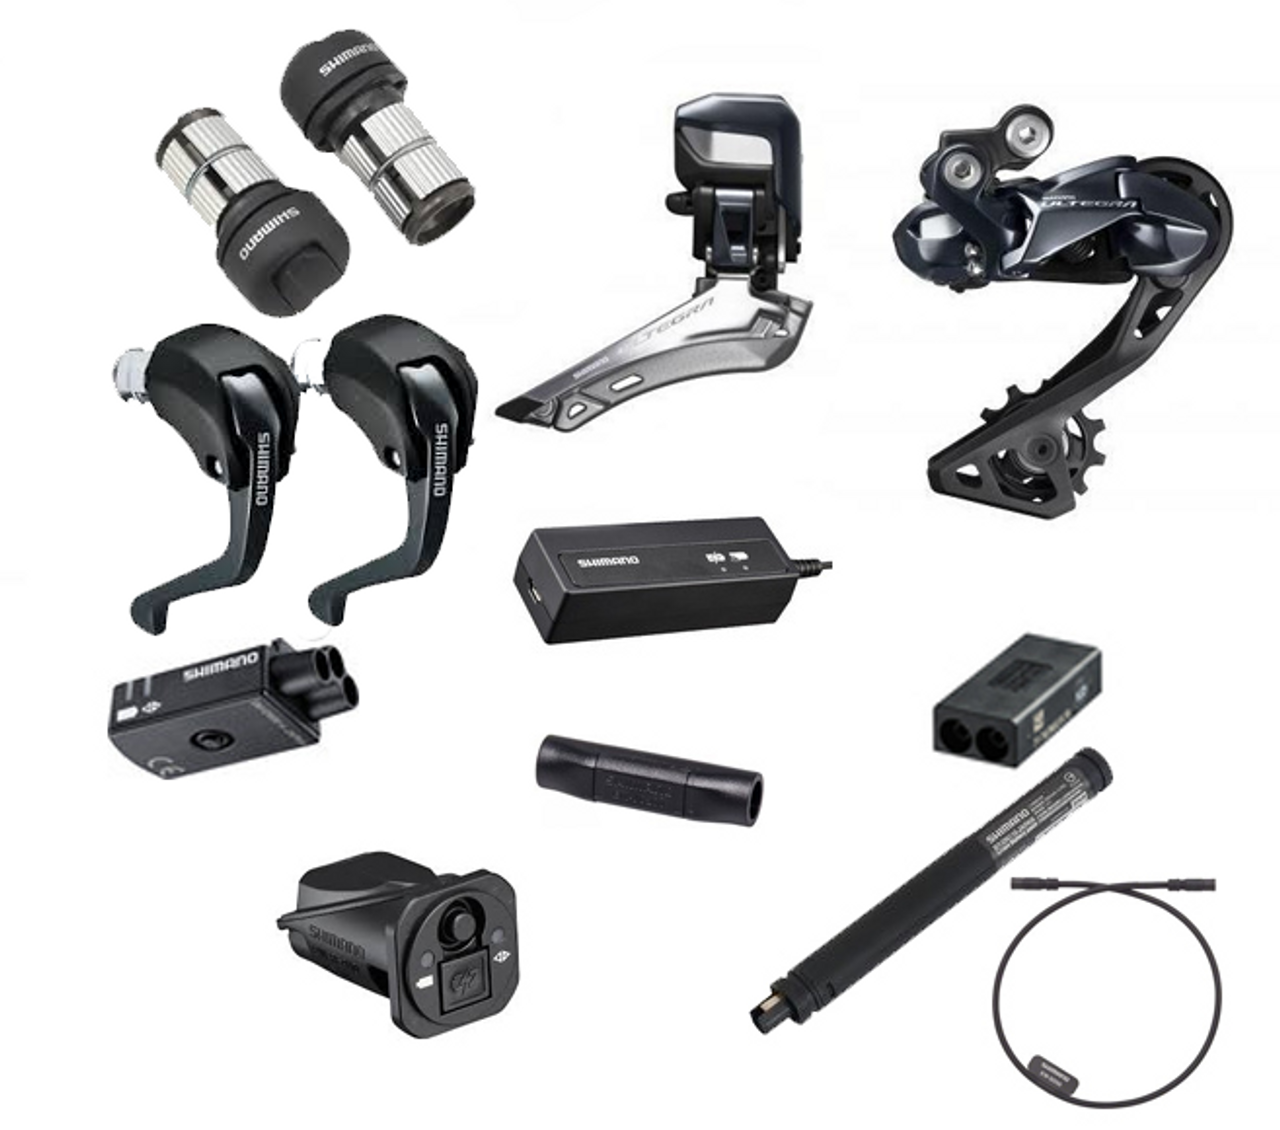 Shimano Ultegra 8050 Di2 TT/Tri Upgrade Kit - Glory Cycles on lights wiring diagram, telephone junction box wiring diagram, road wiring diagram, electronic wiring diagram, bike wiring diagram,